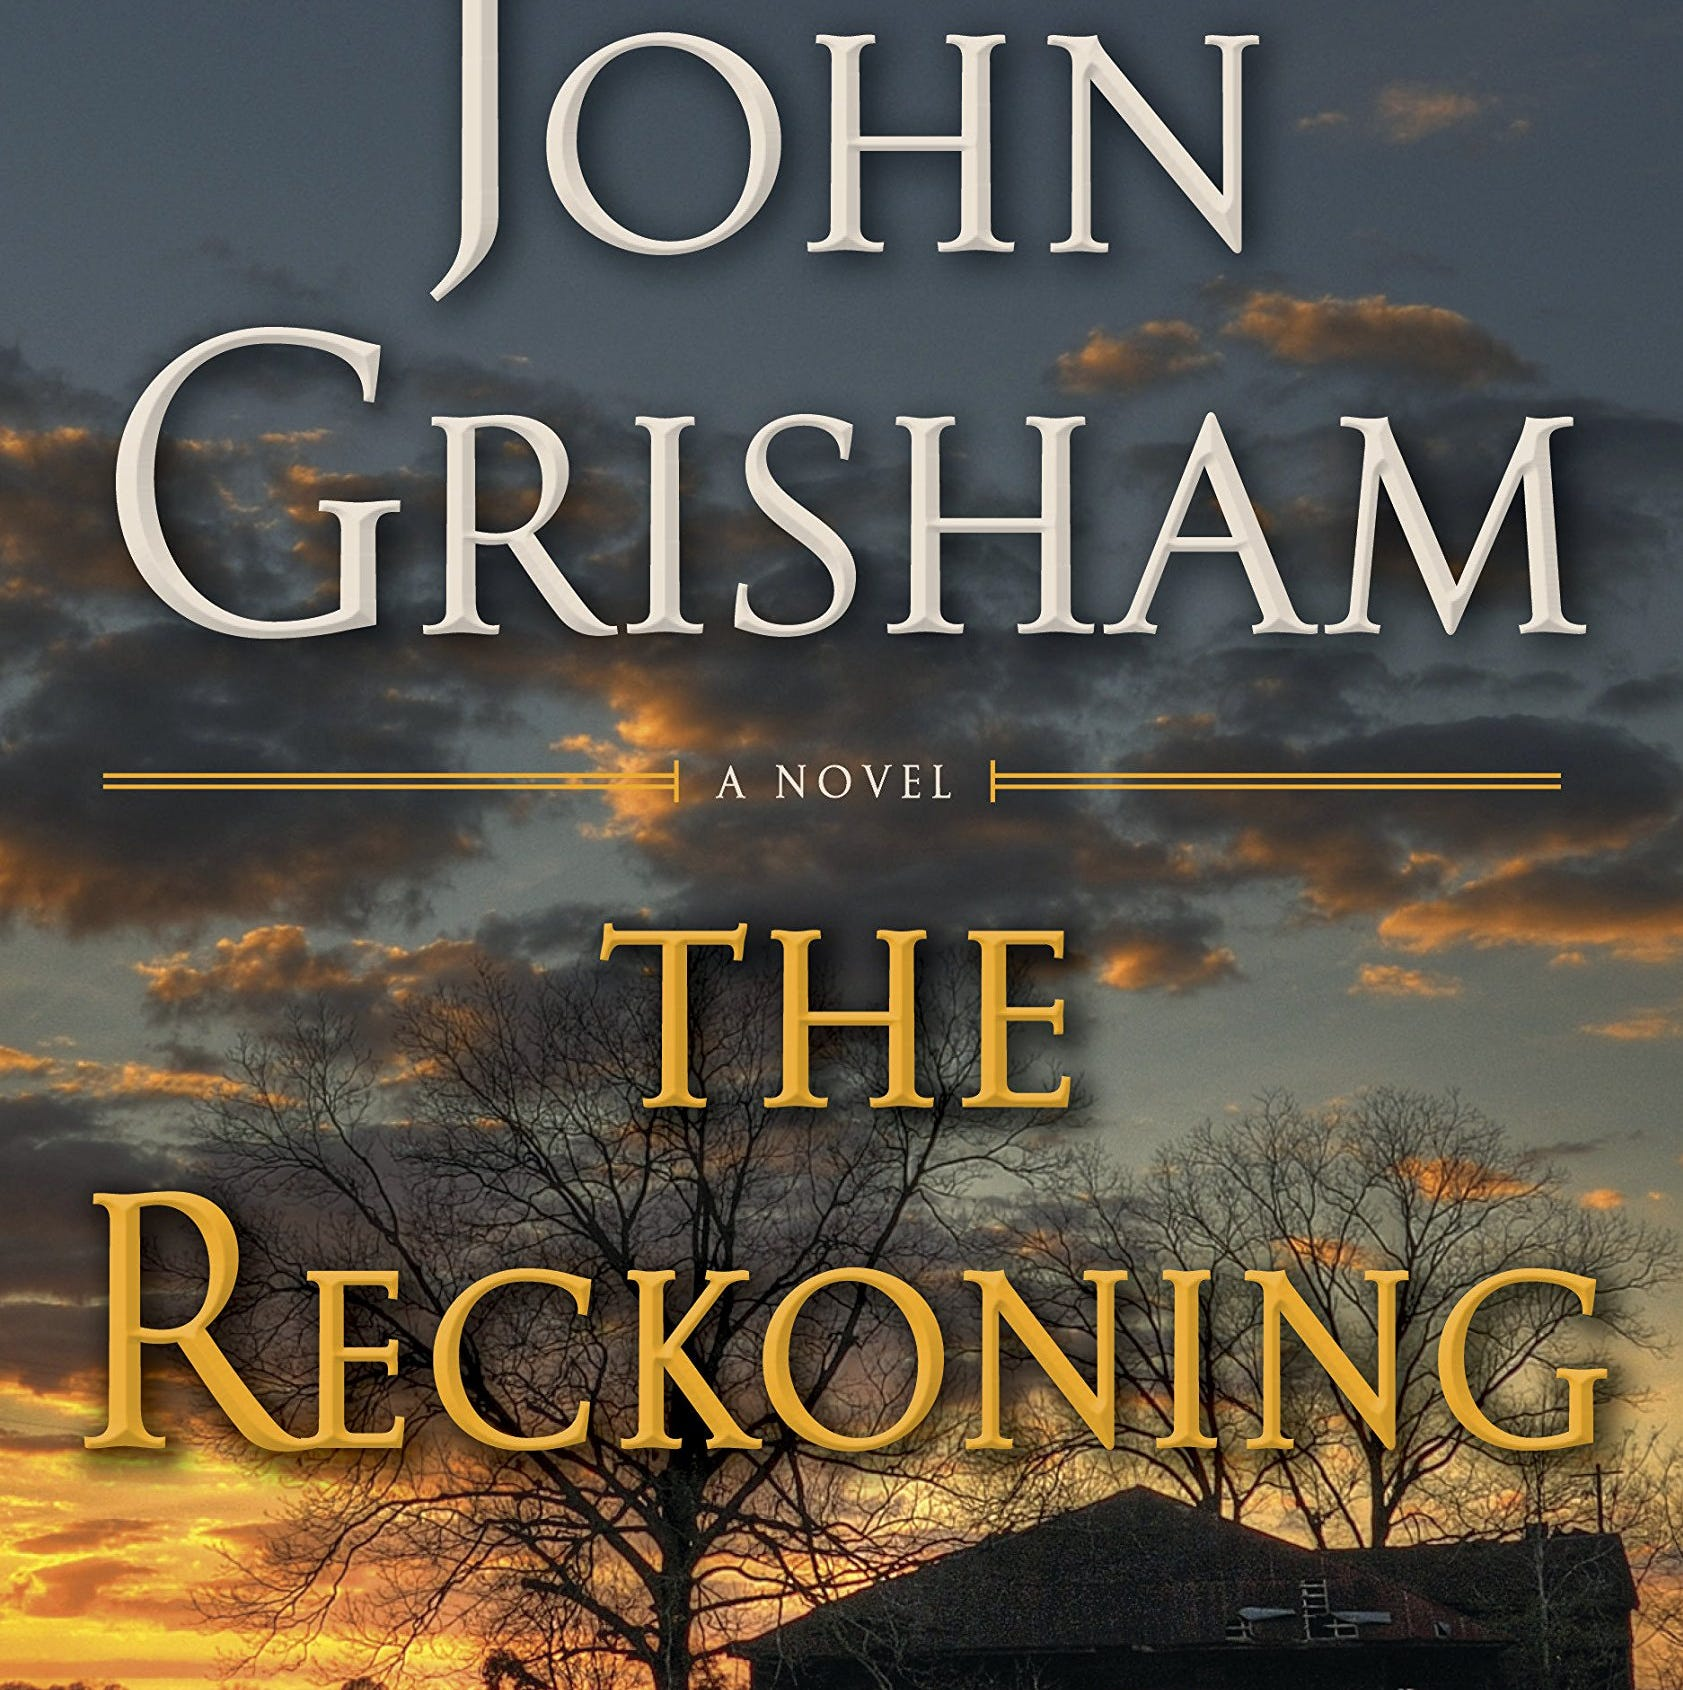 He 'stole' a story he heard 30 years ago for new novel, John Grisham admits